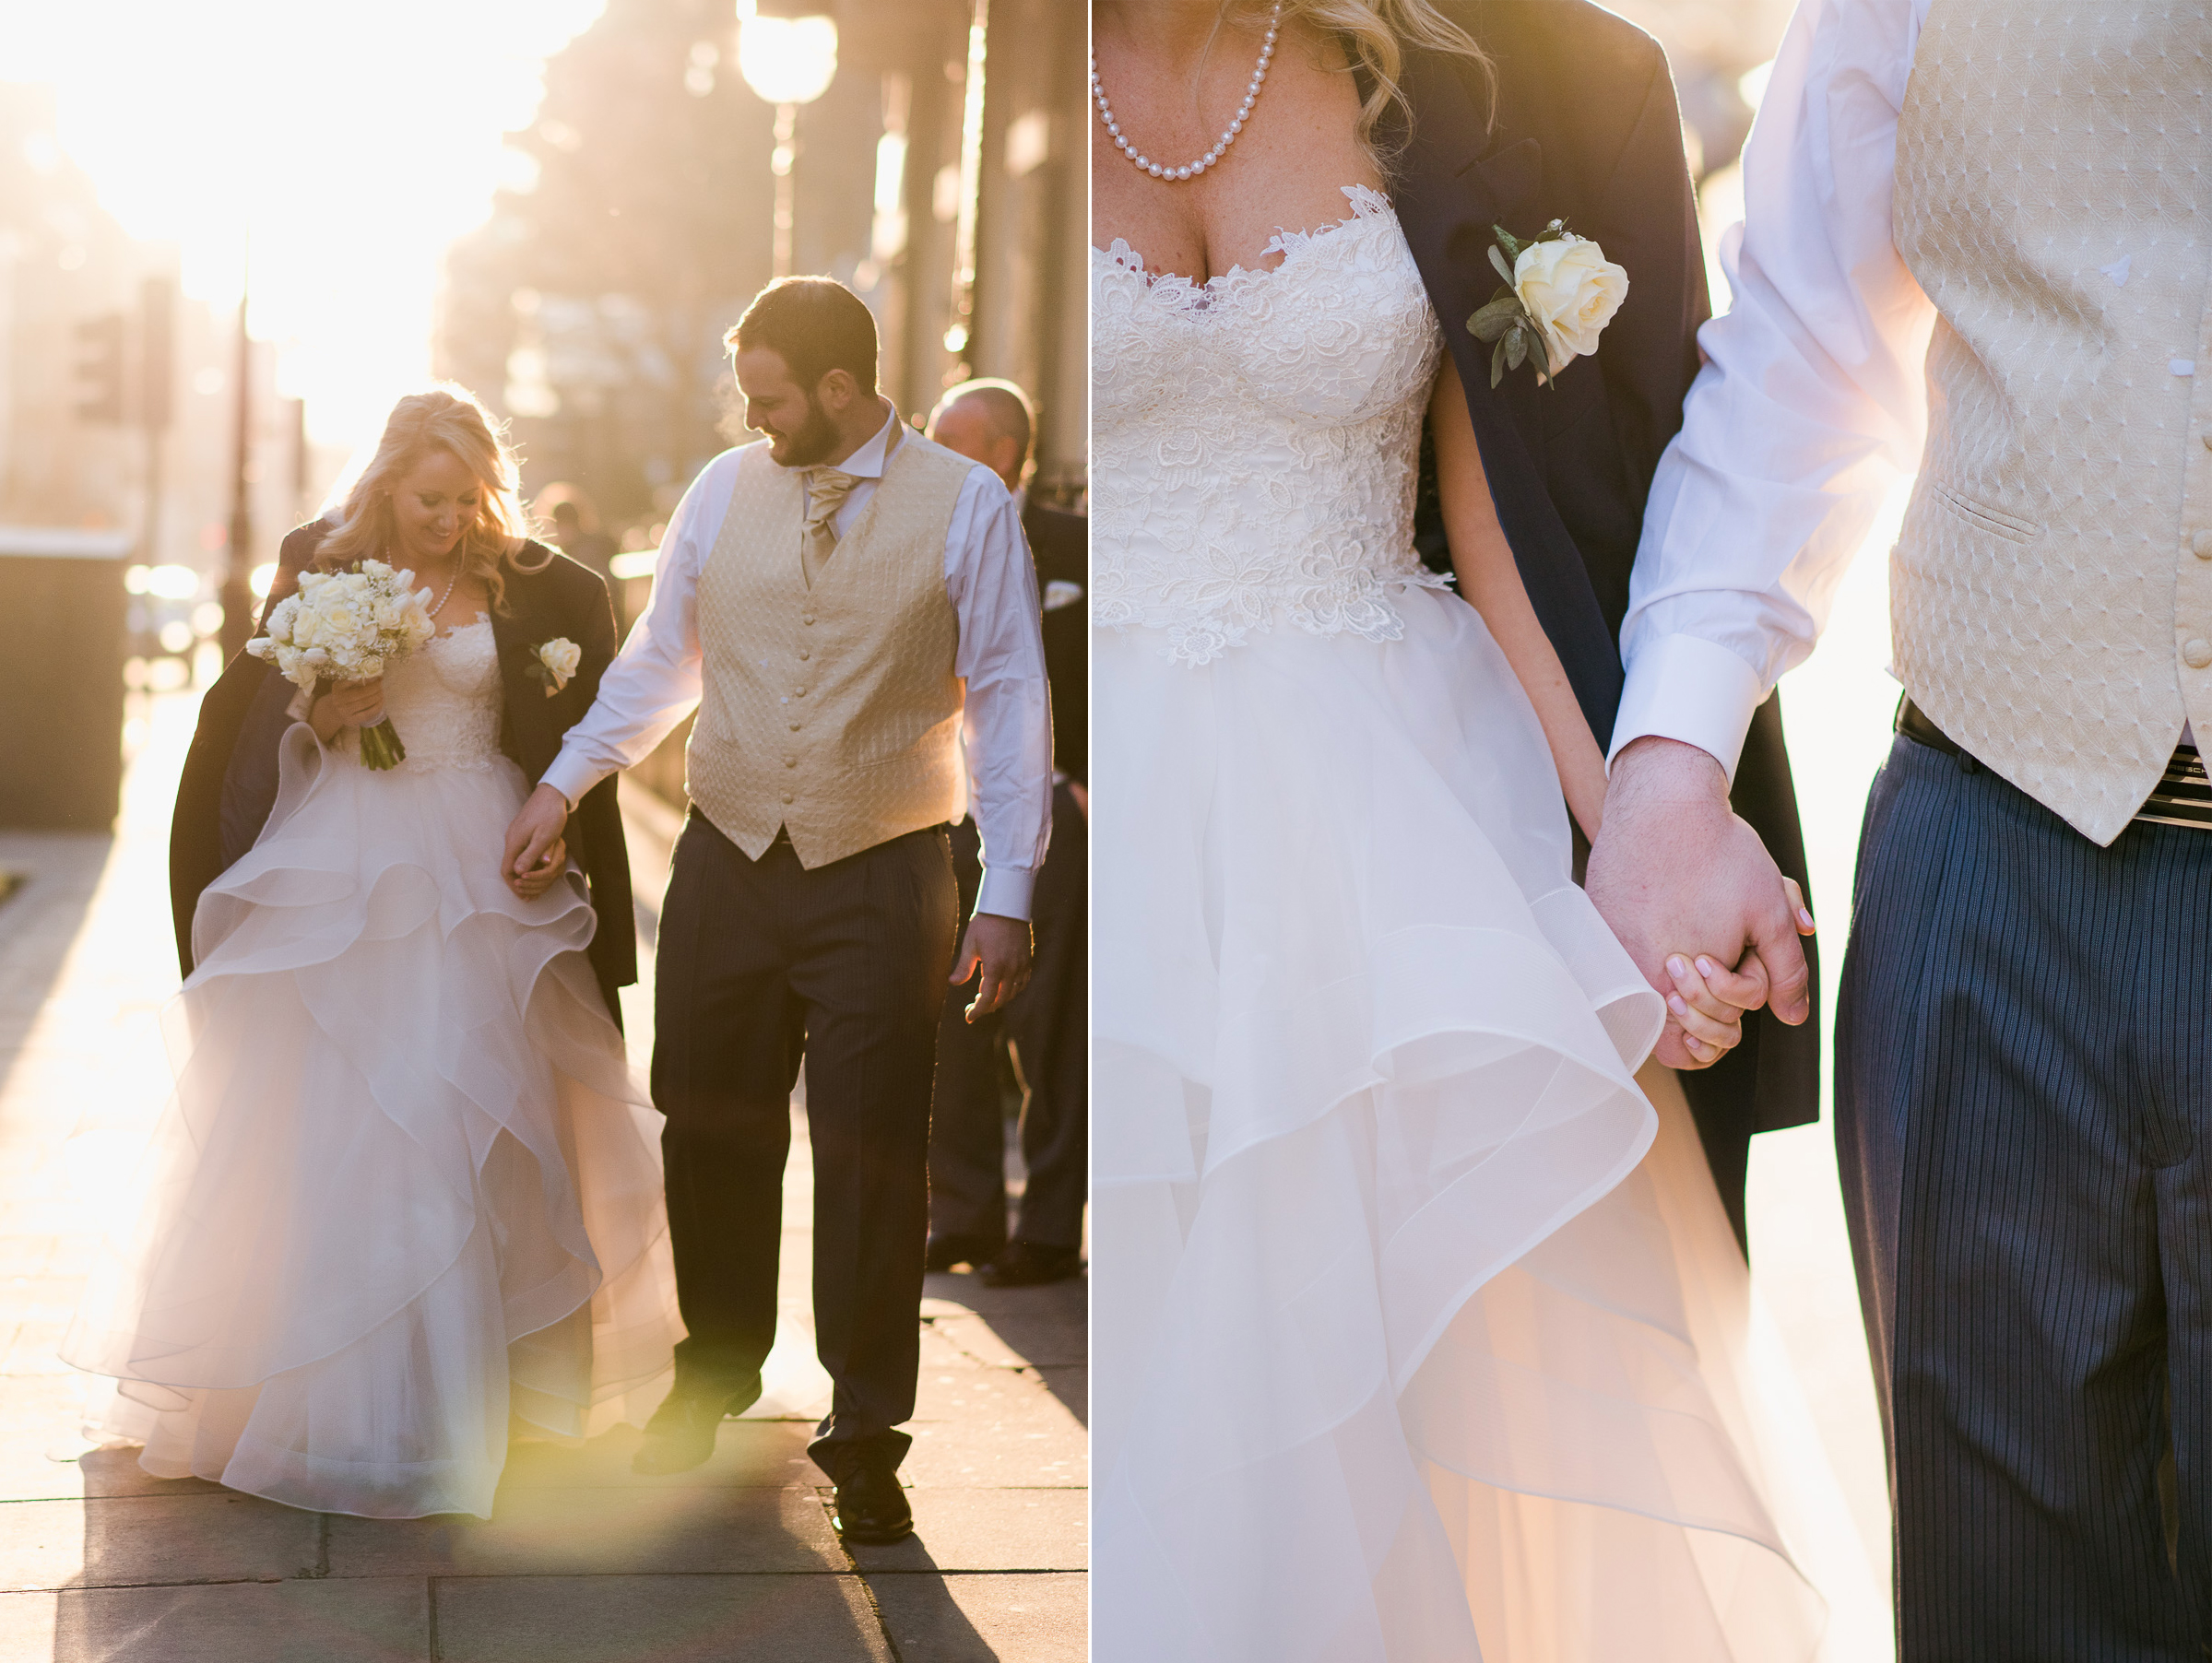 14 Bride Groom Wedding London Photography.jpg